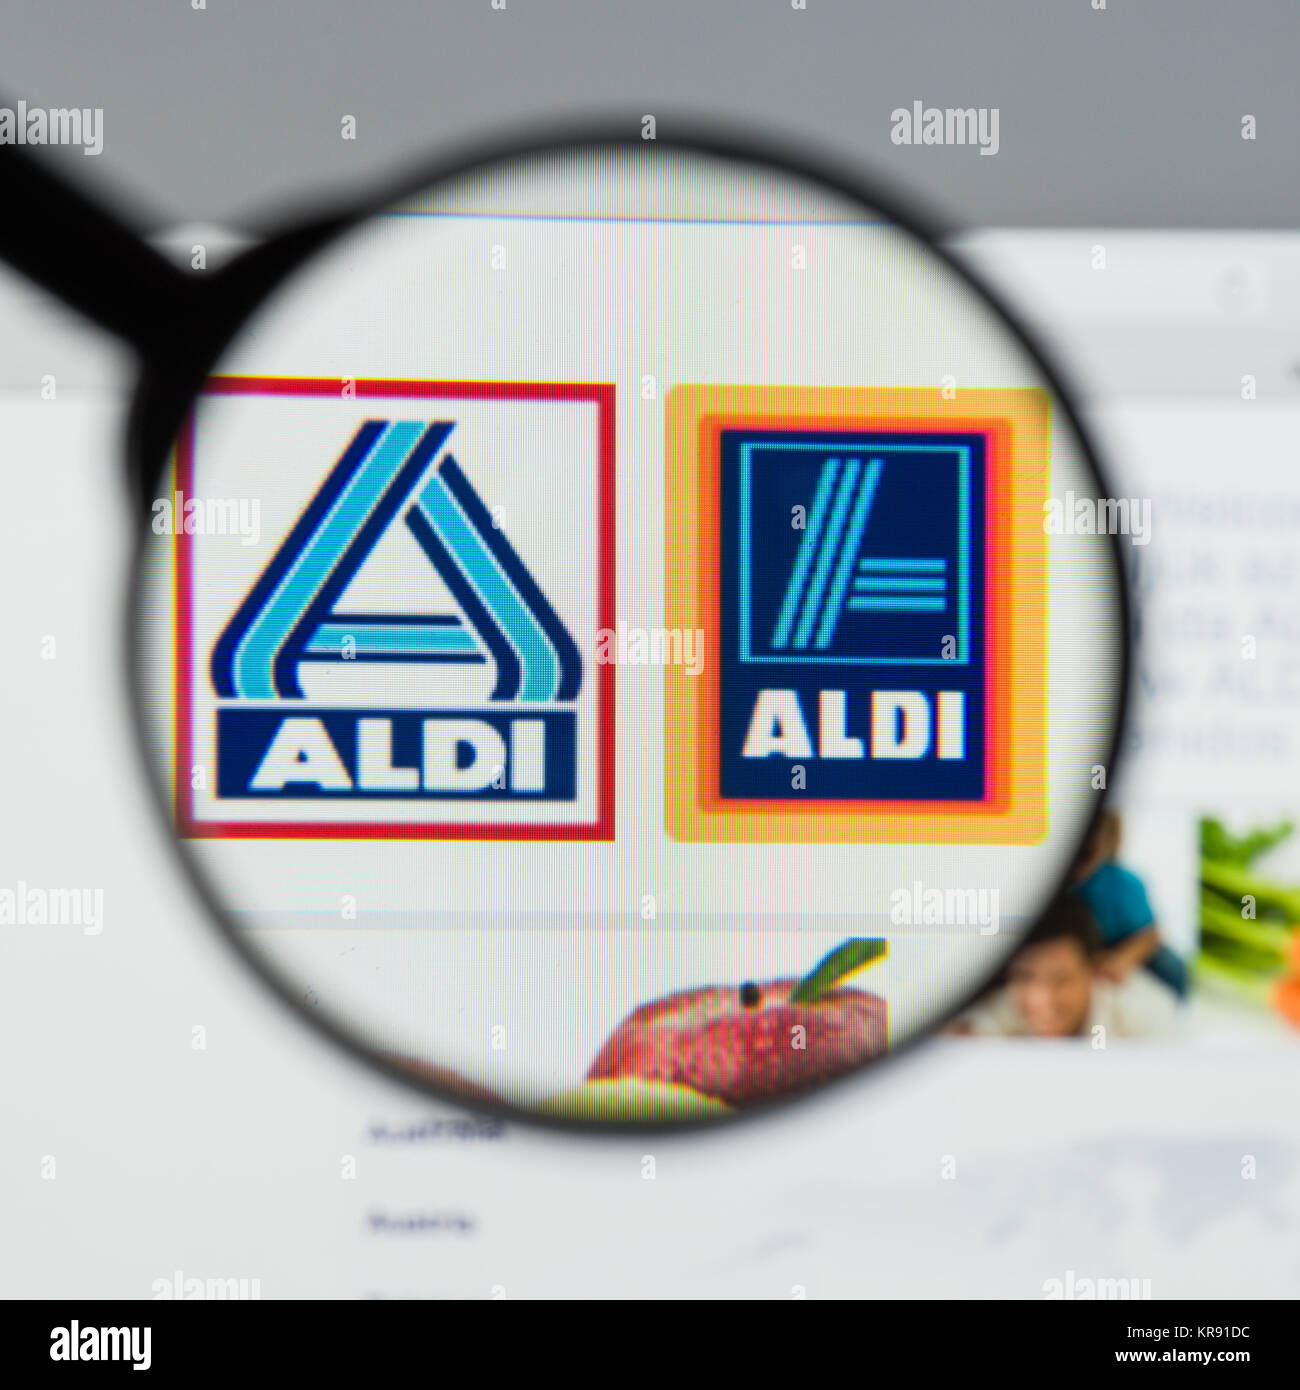 Aldi distribution stock photos aldi distribution stock images milan italy august 10 2017 aldi website homepage it is the biocorpaavc